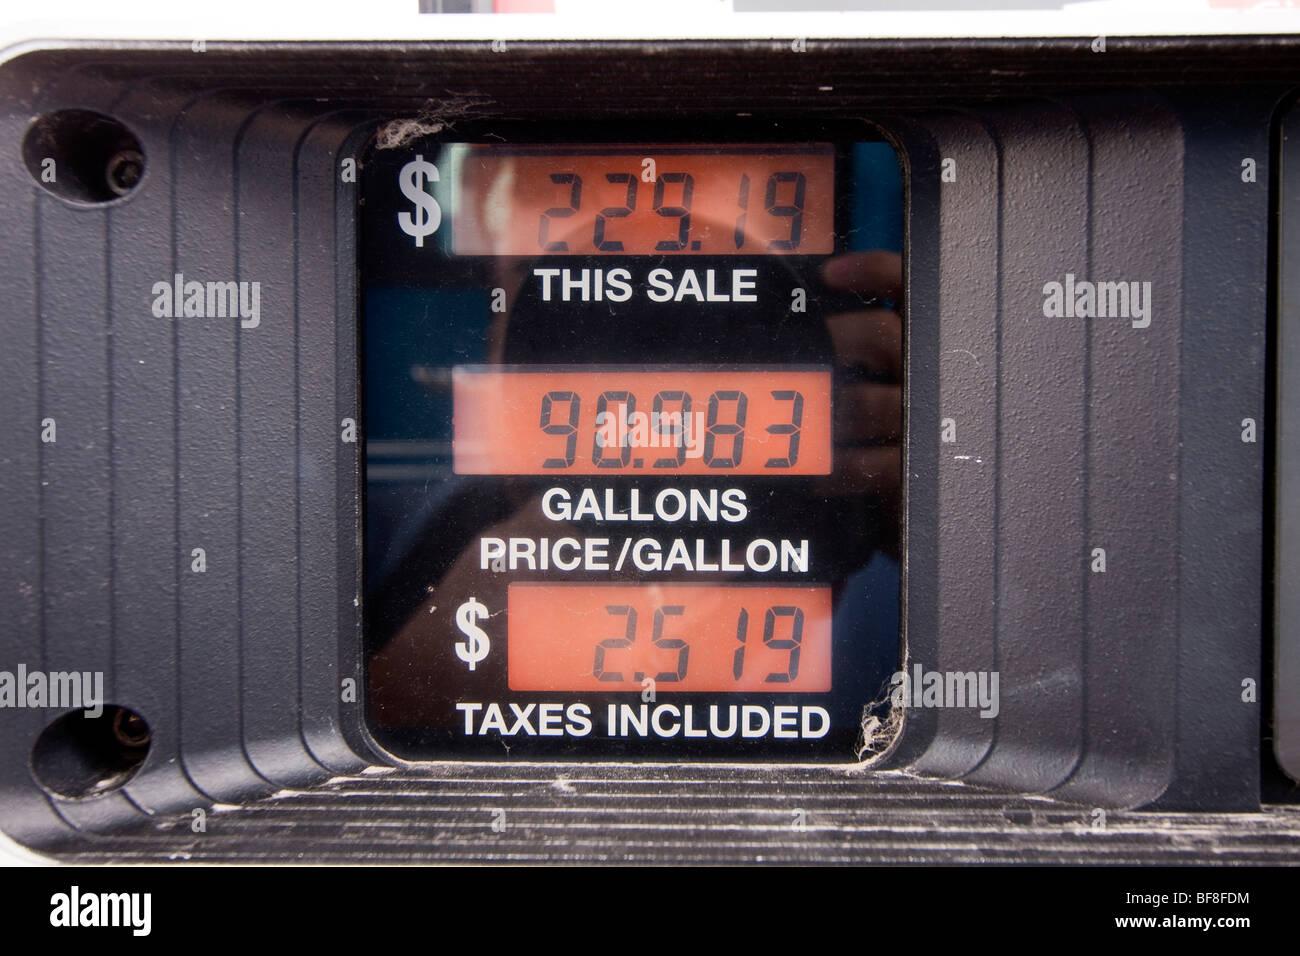 A gas pump displaying a total of $229.19 for gasoline. - Stock Image